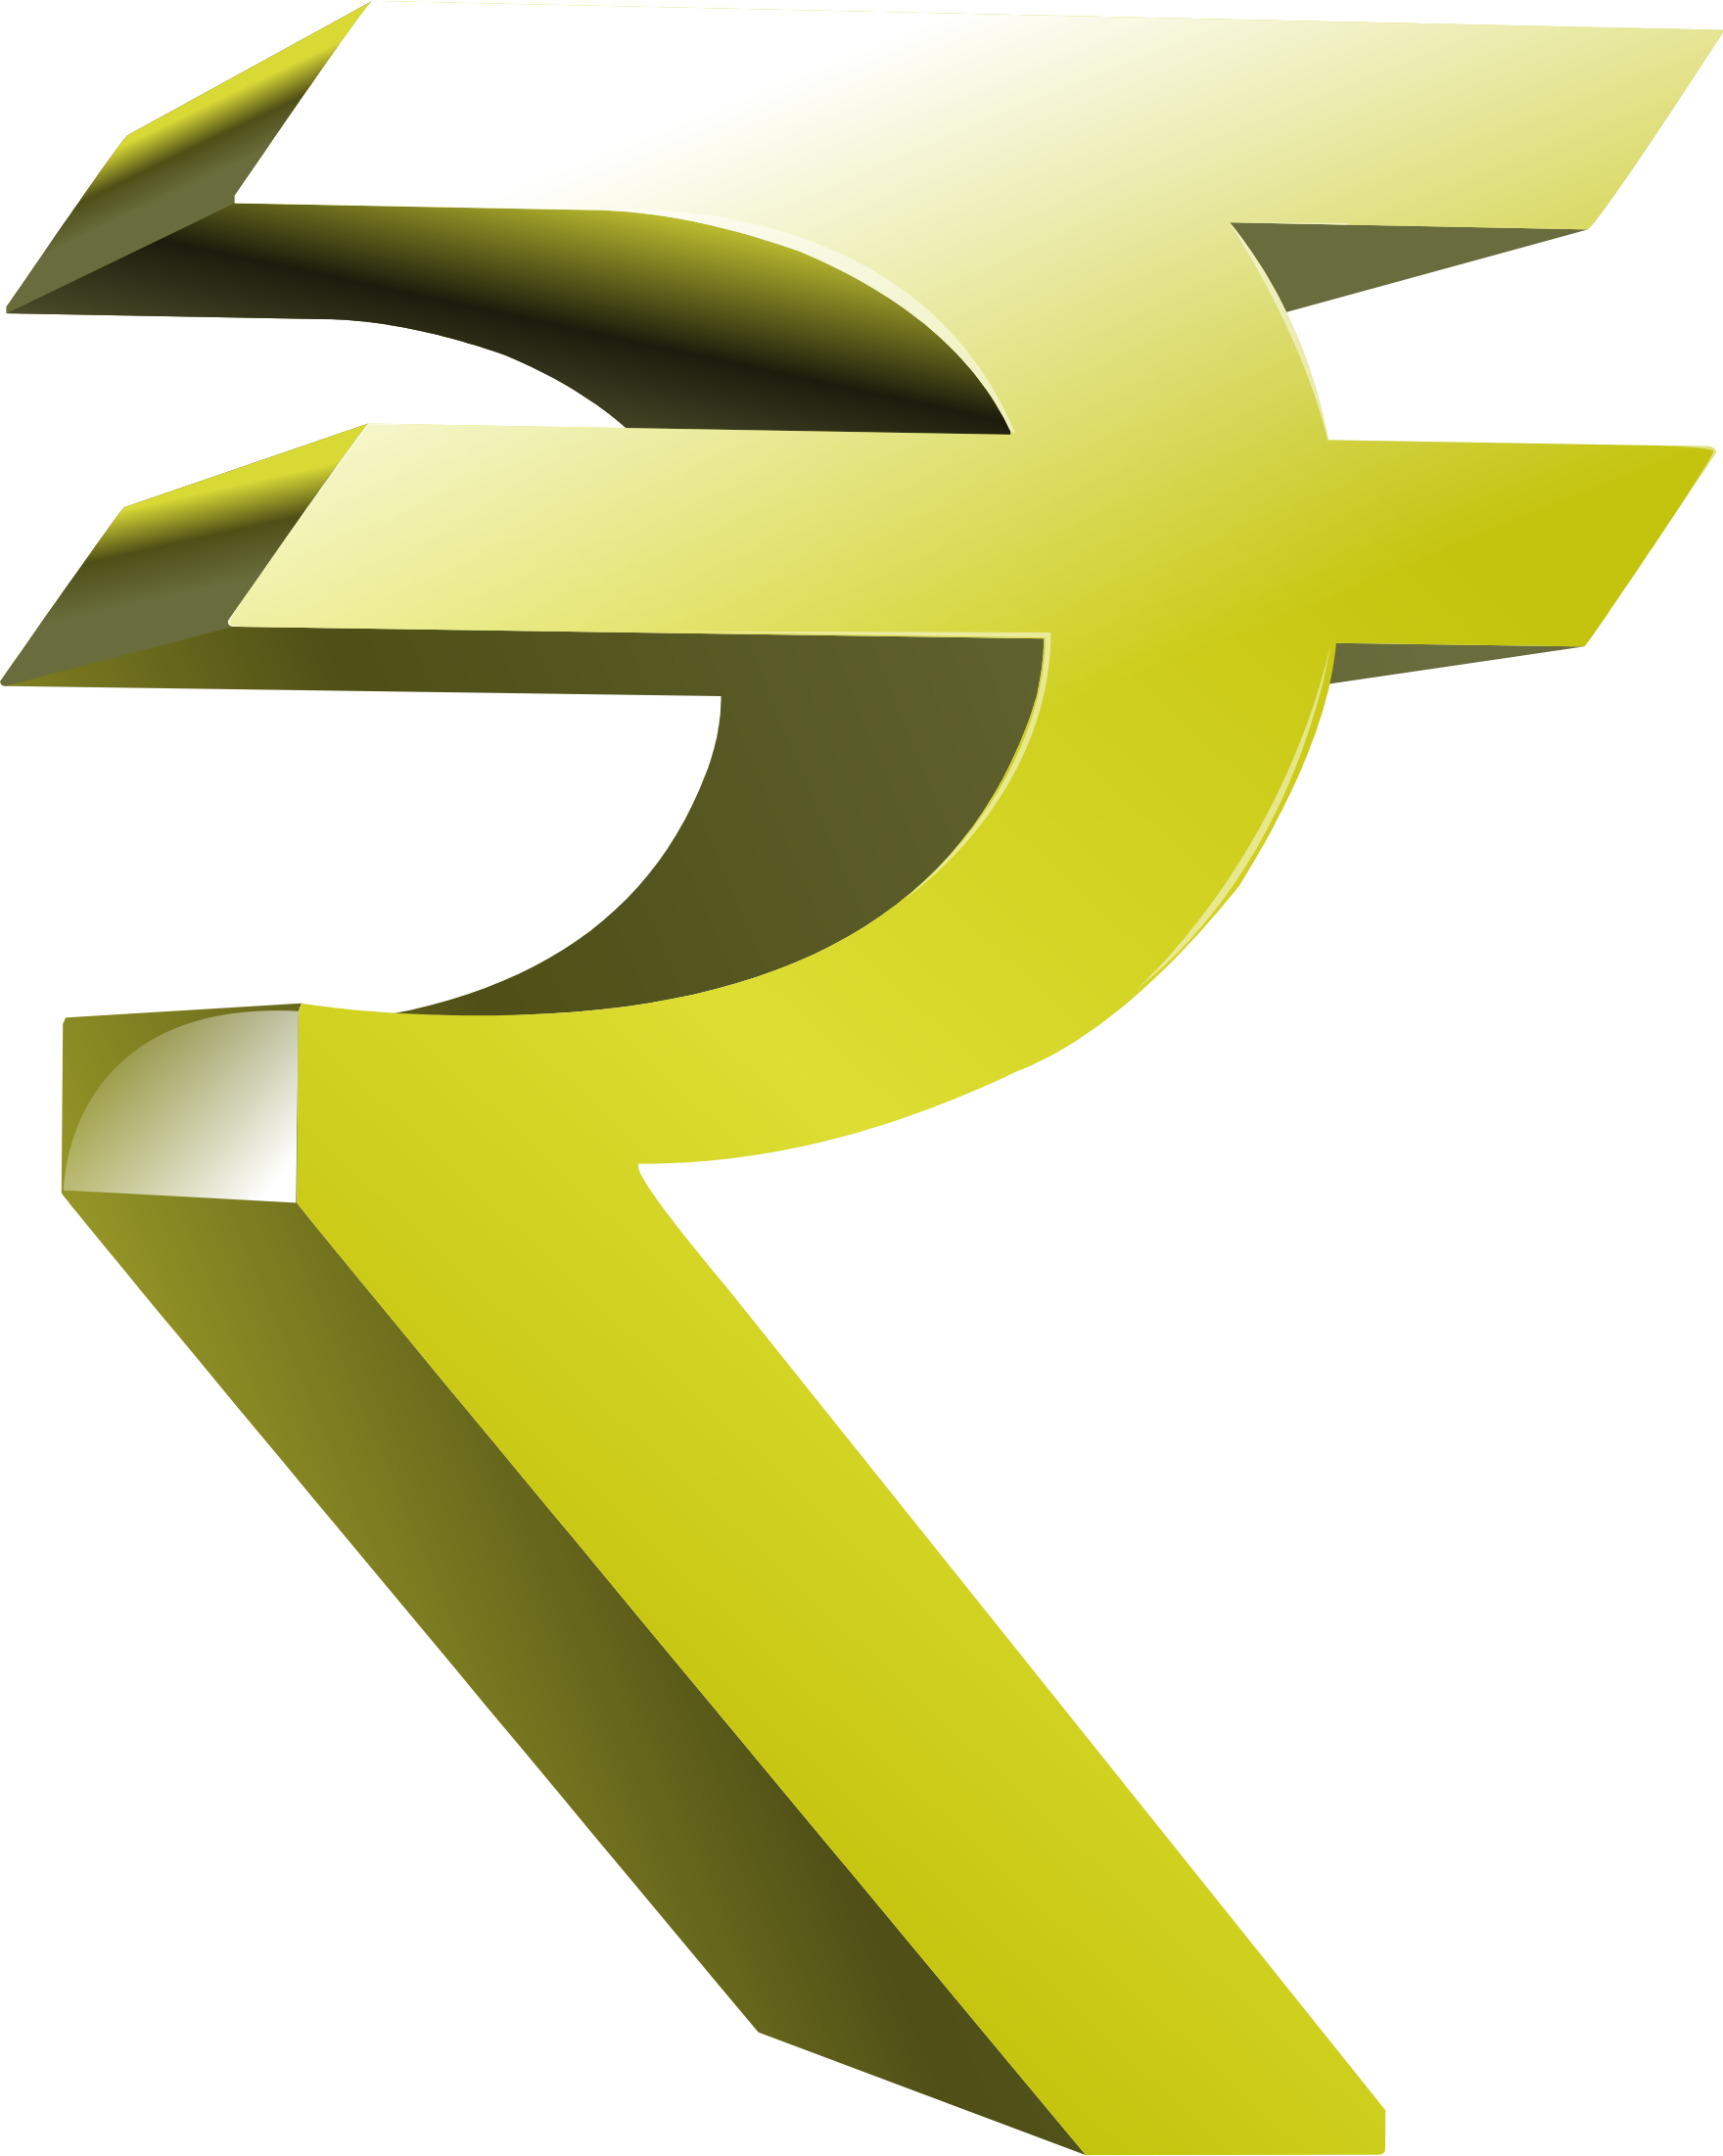 How to enter rupee symbol from dell keyboard image collections download rupee symbol transparent hq png image freepngimg download png image rupee symbol transparent 300 biocorpaavc biocorpaavc Choice Image